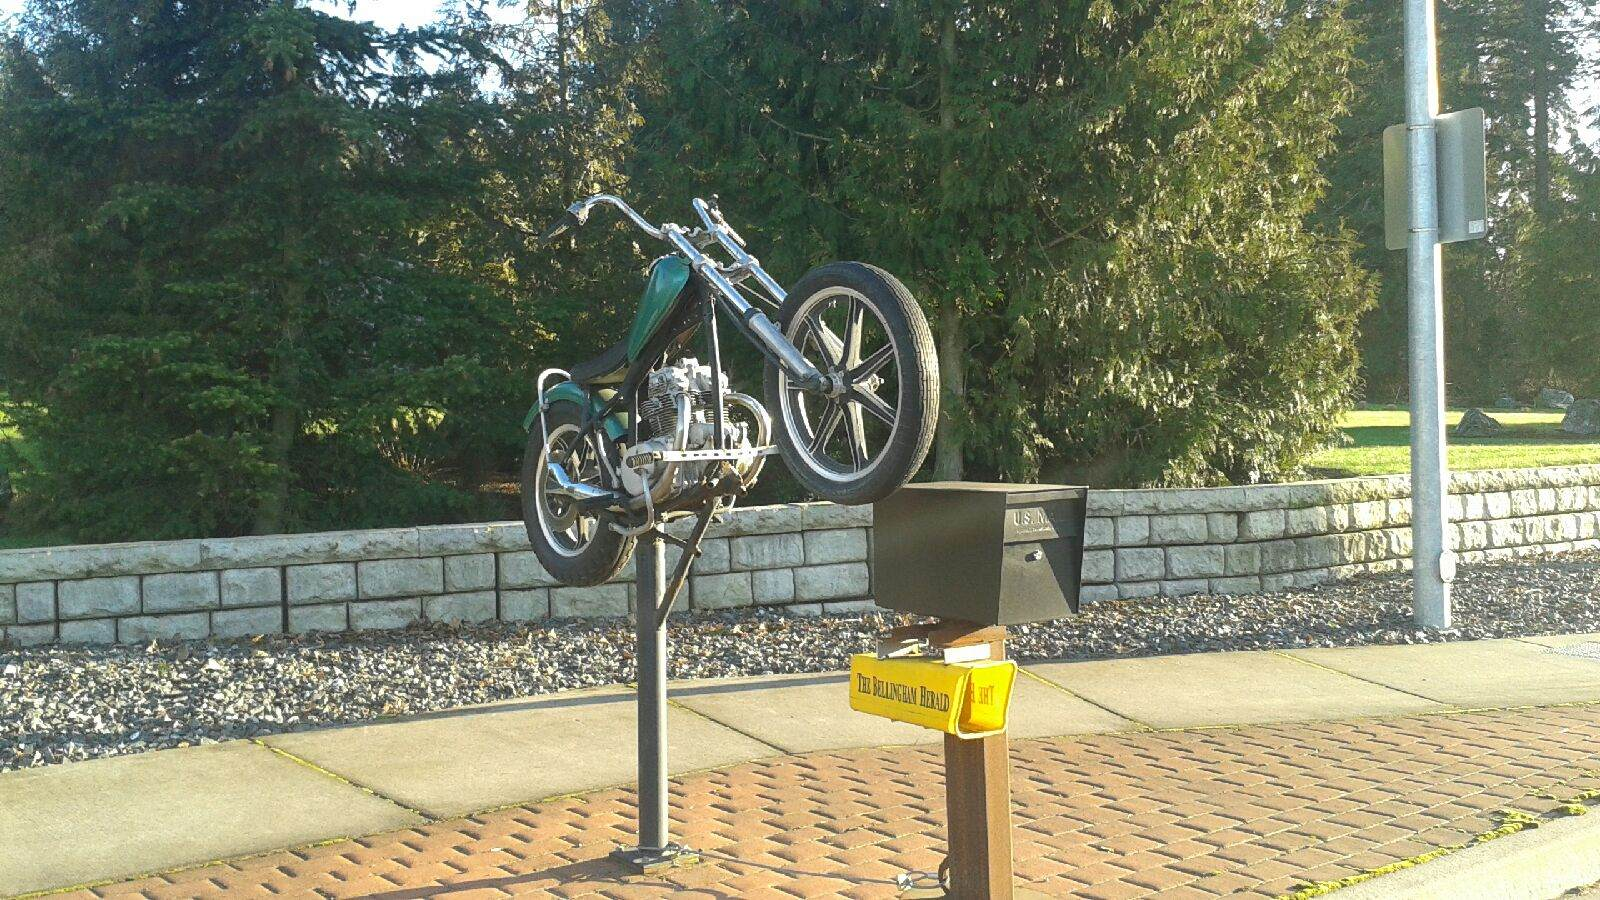 MotorcycleMailbox